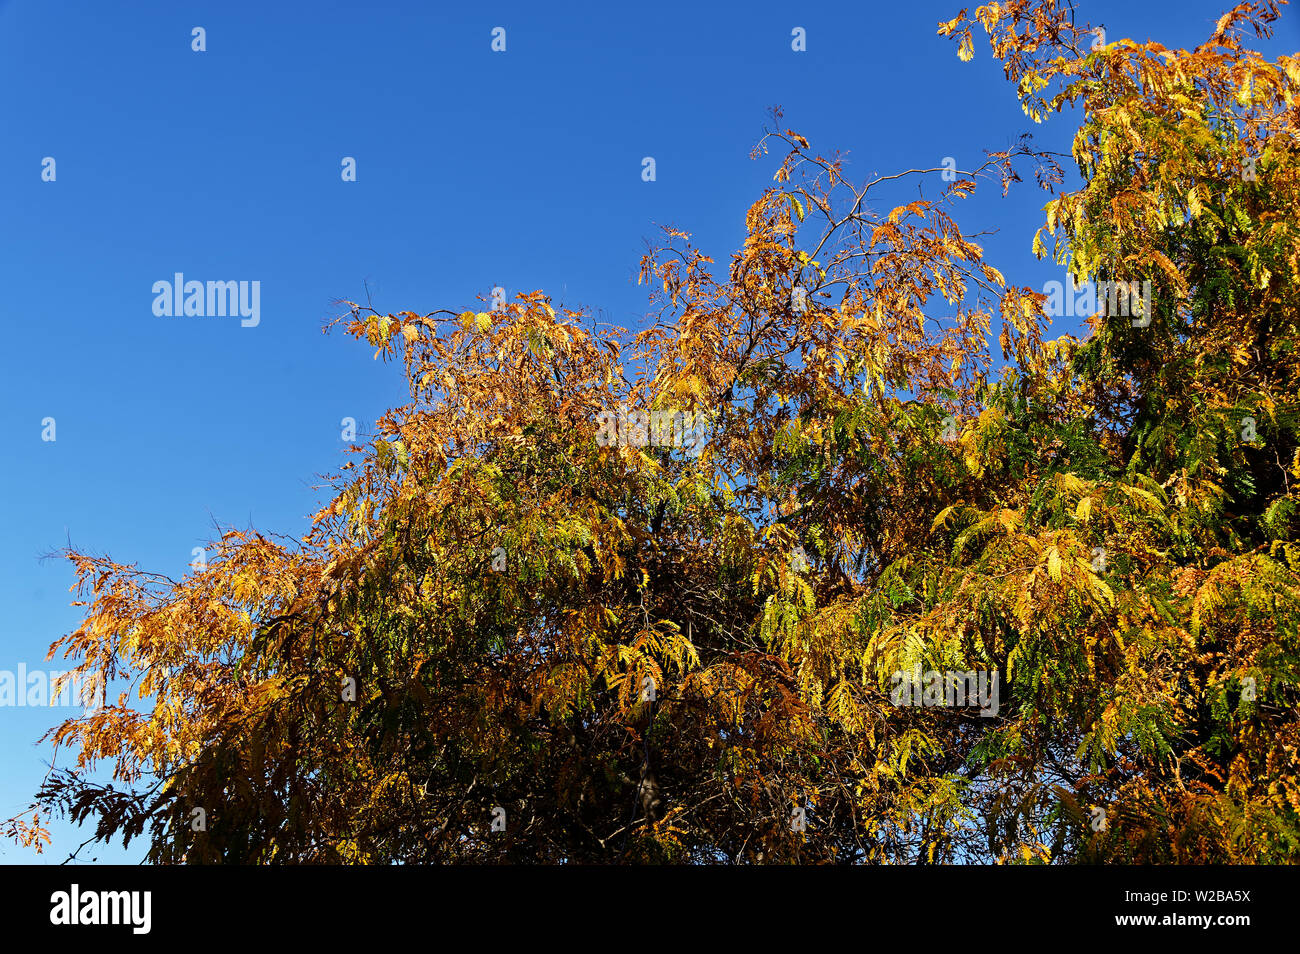 A bright blue sky is the backdrop for autumn leaves on a tree - Stock Image